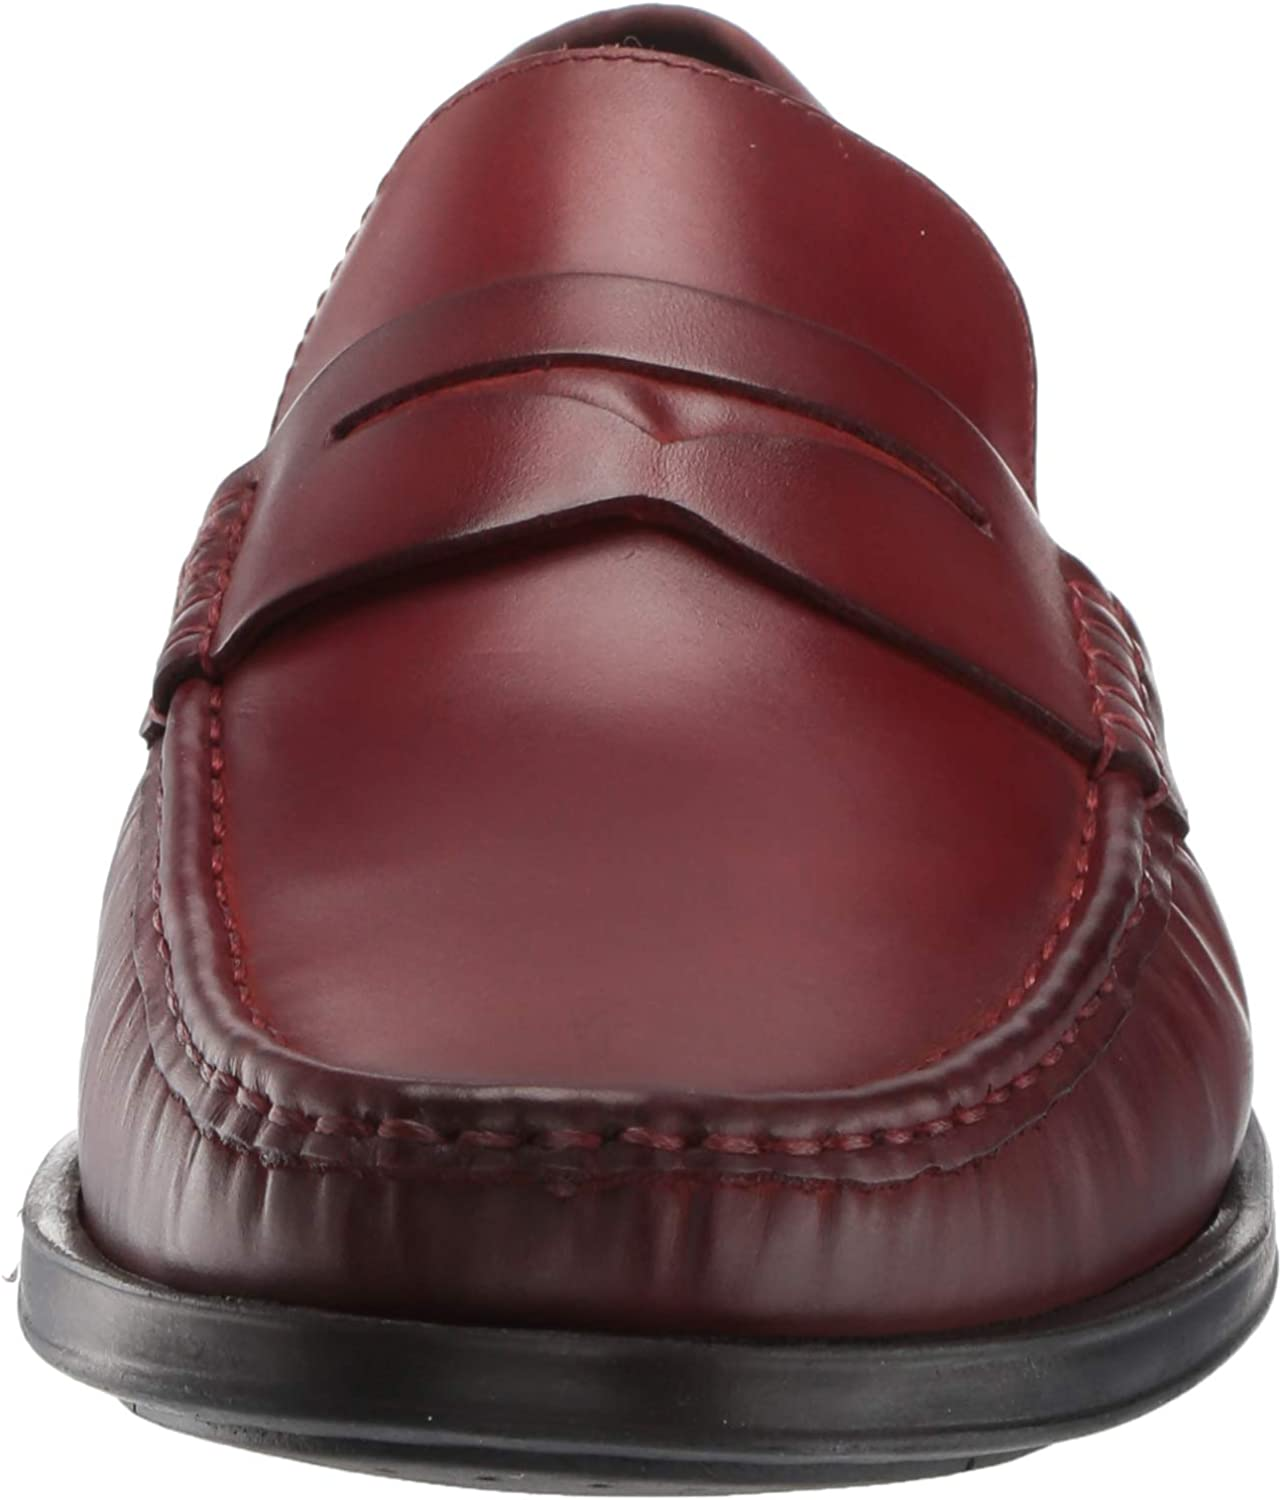 MARC JOSEPH NEW YORK Men's Leather Made in Brazil Cortlad Loafer Penny Red Brushed Nappa